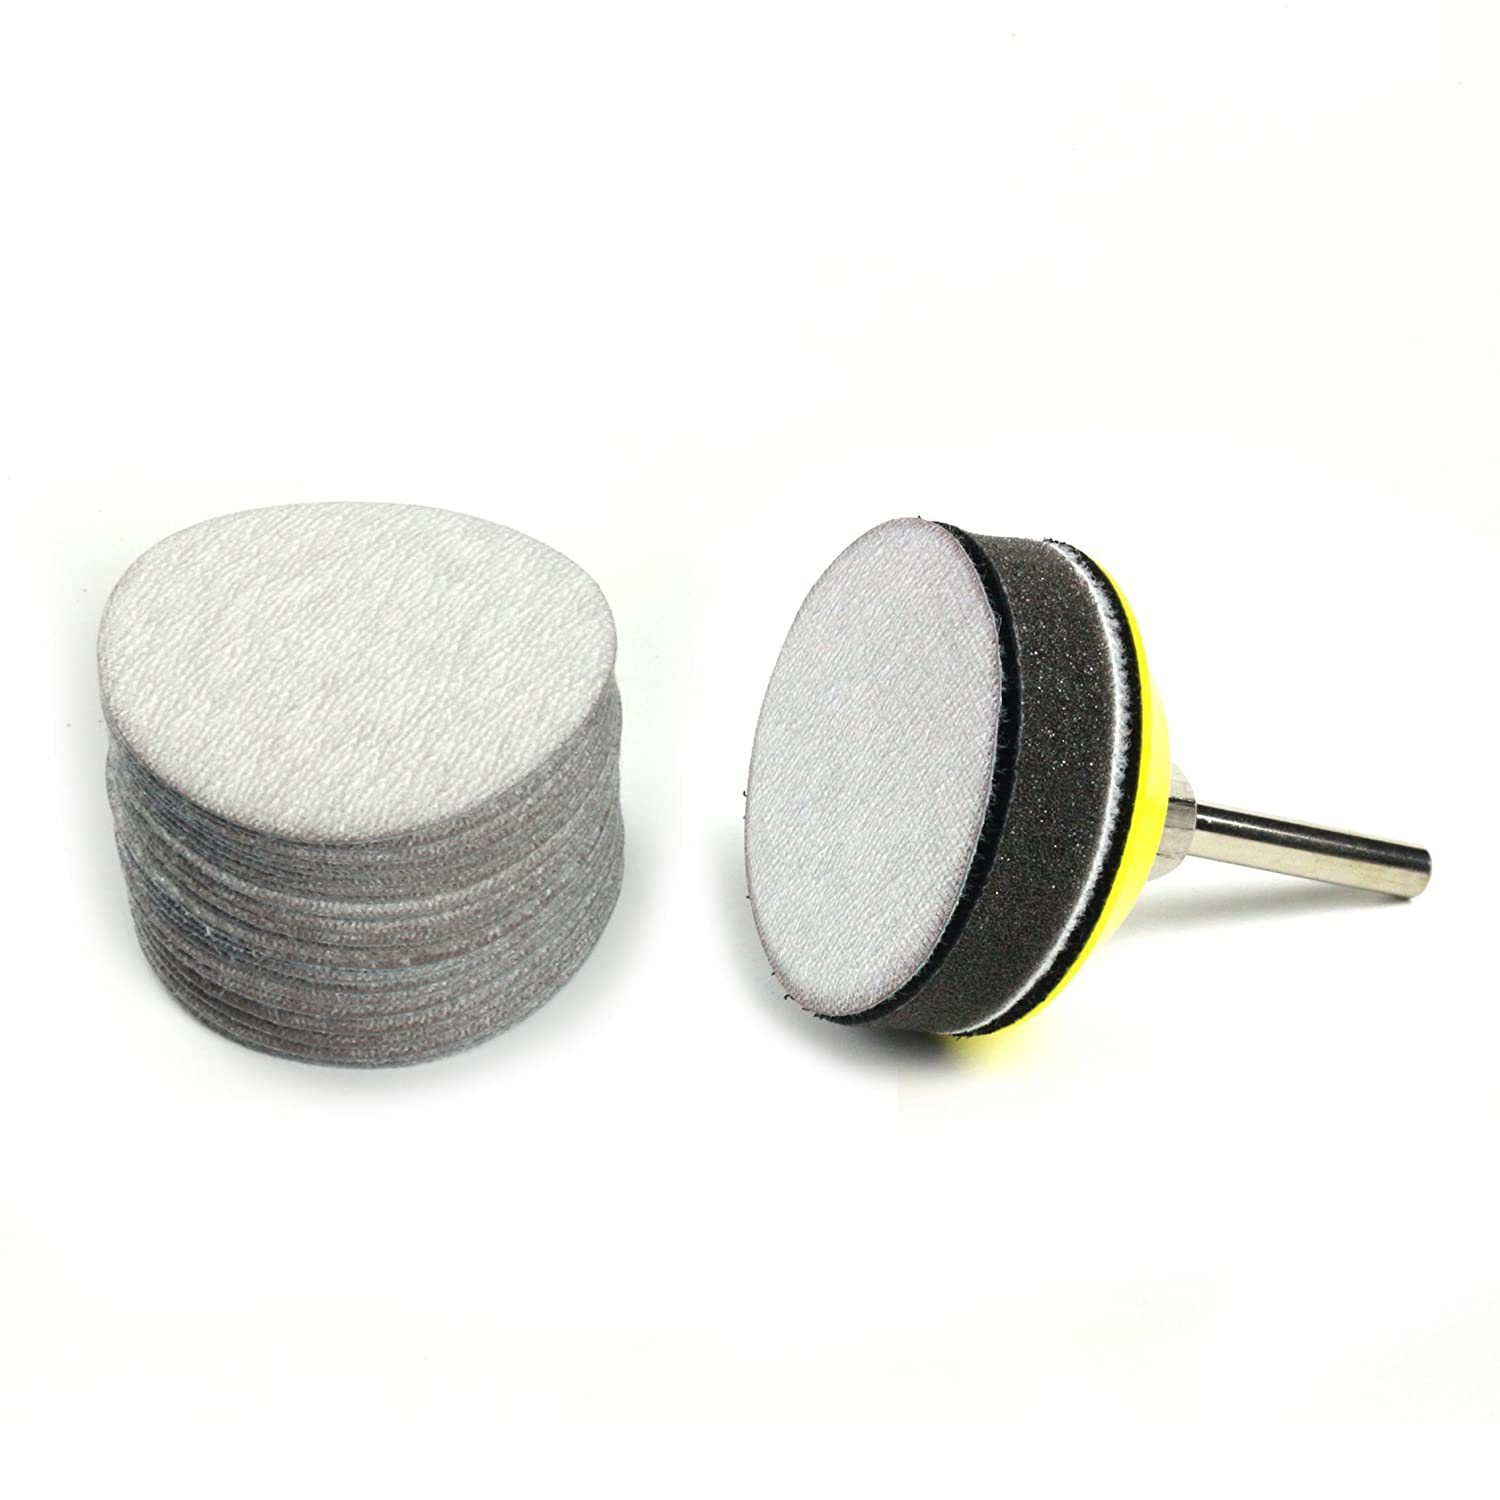 30-Pack 2-Inch 3000 Grit Aluminum Oxide Wet//Dry Hook and Loop Sanding Discs with a 6mm Shank Backing Pad Soft Sponge Buffering Pad for DIY Woodworking